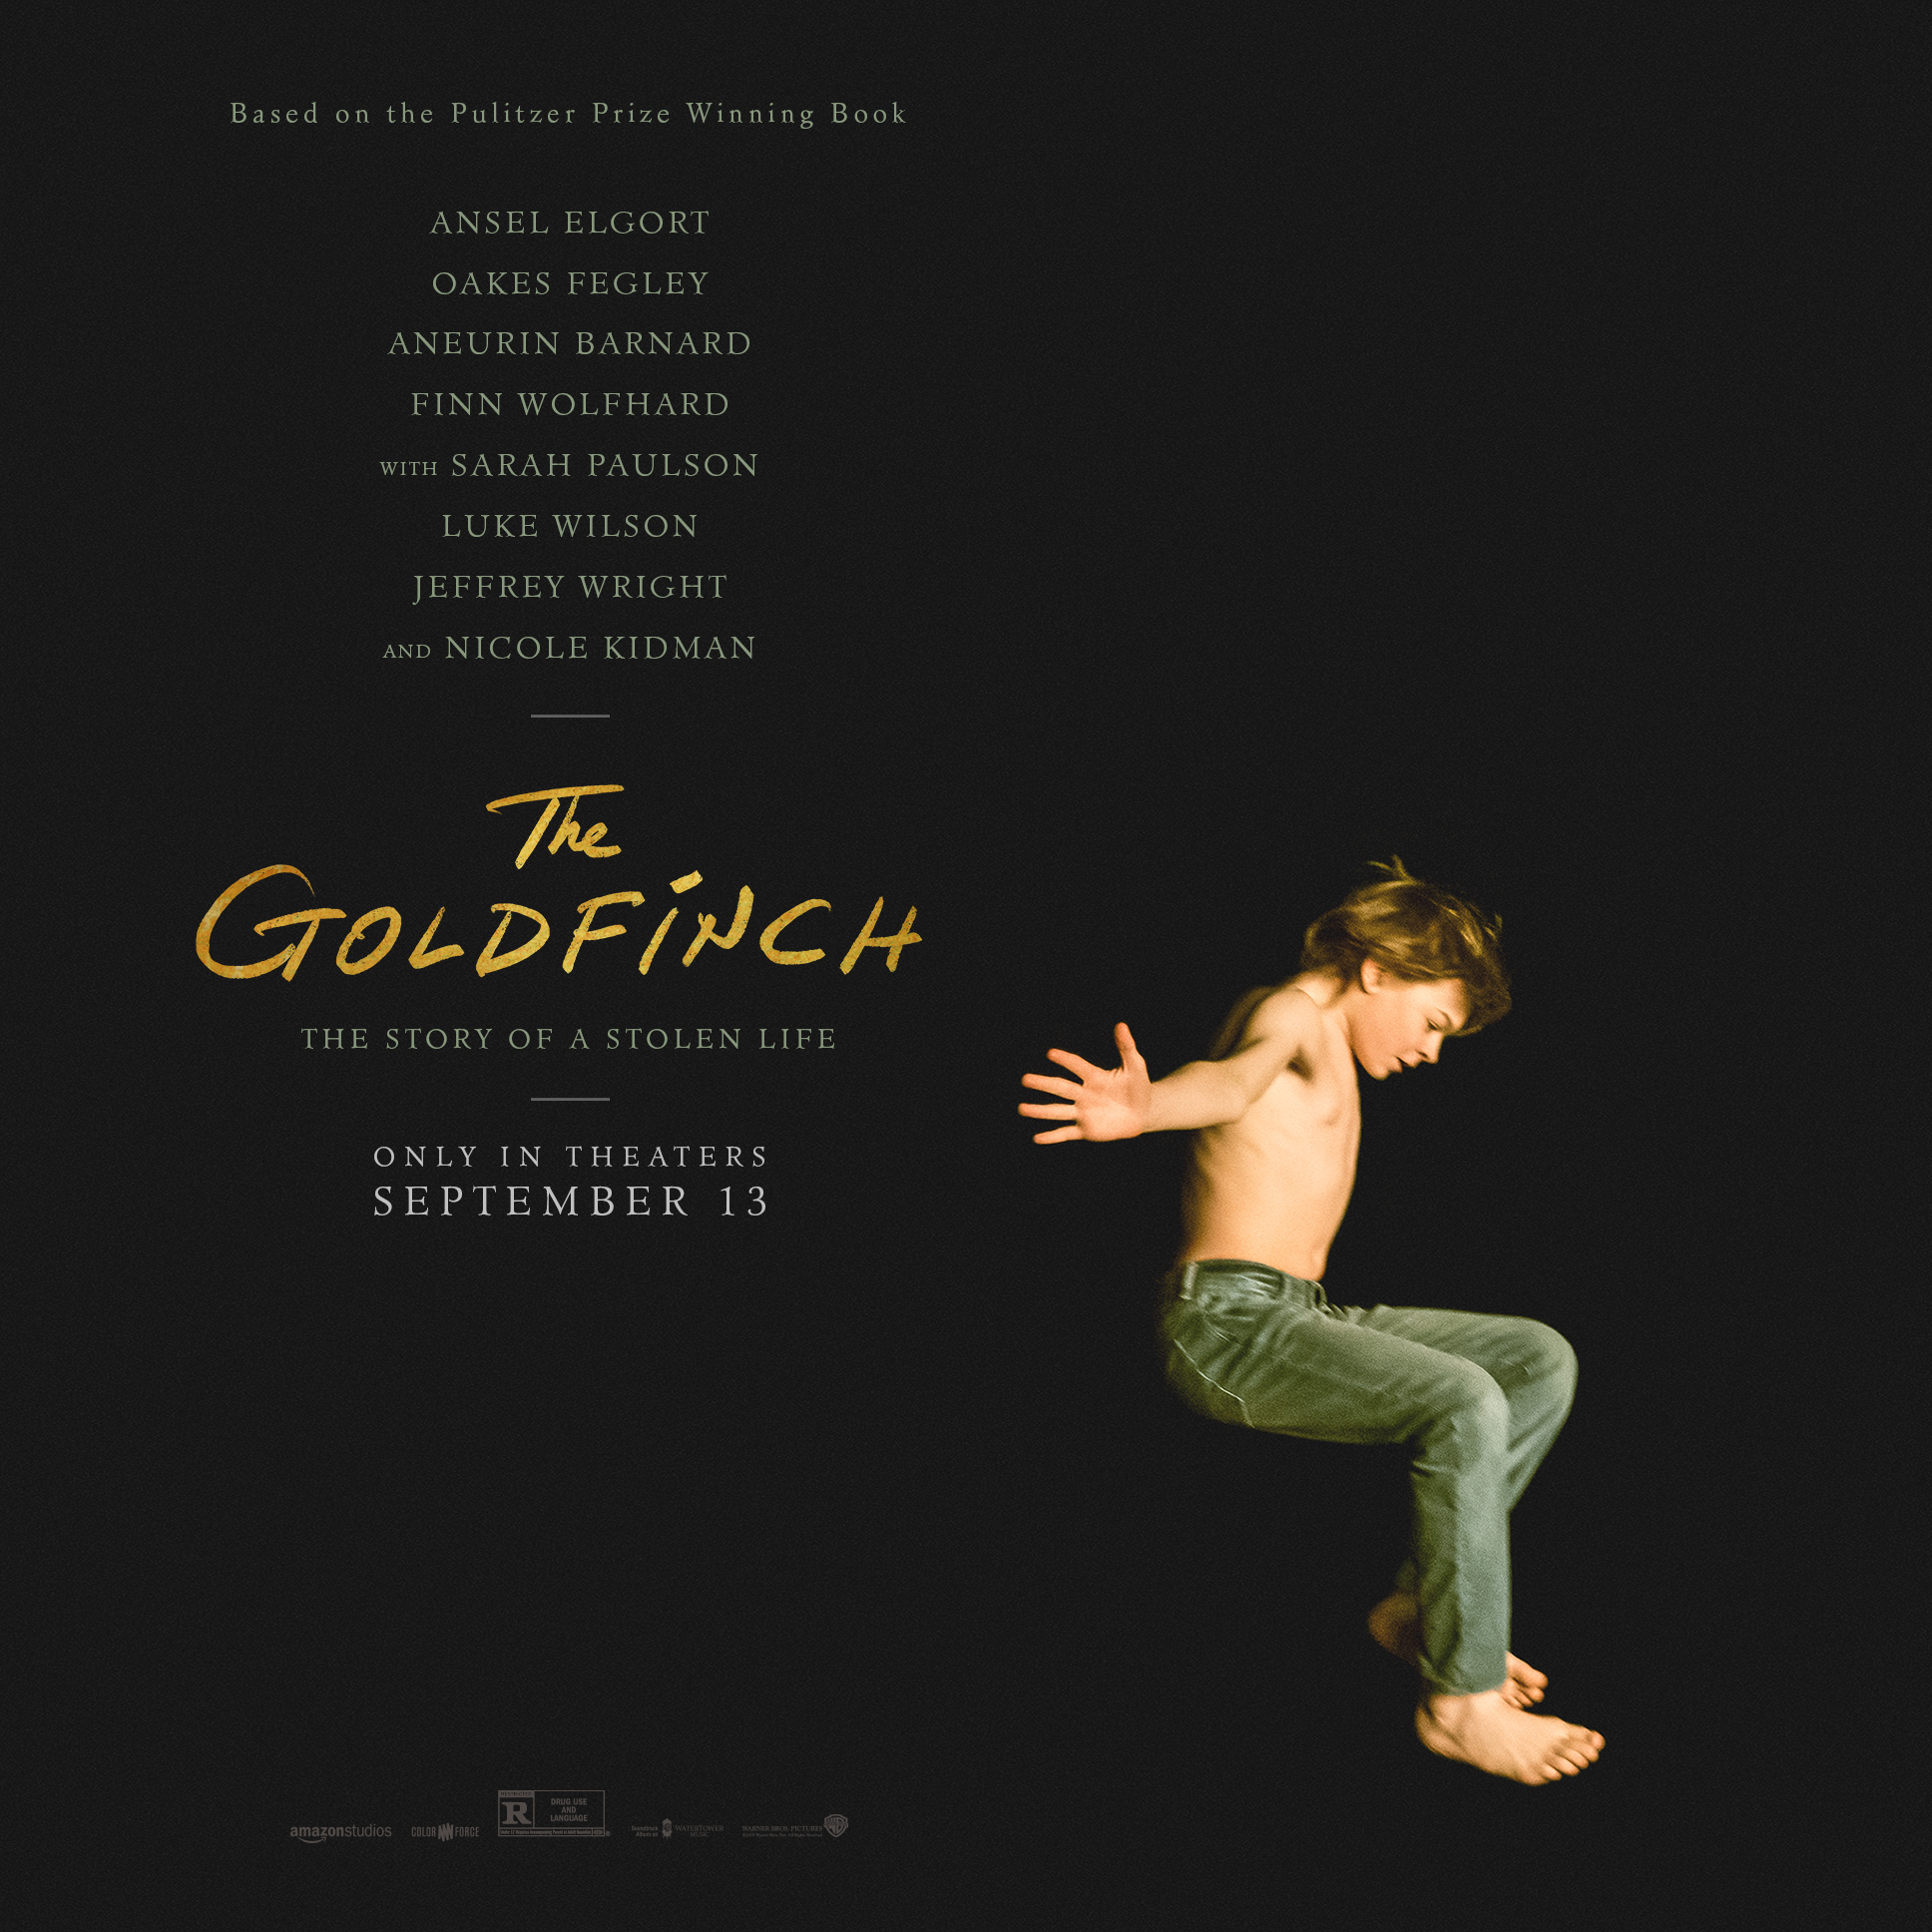 @GoldfinchMovie